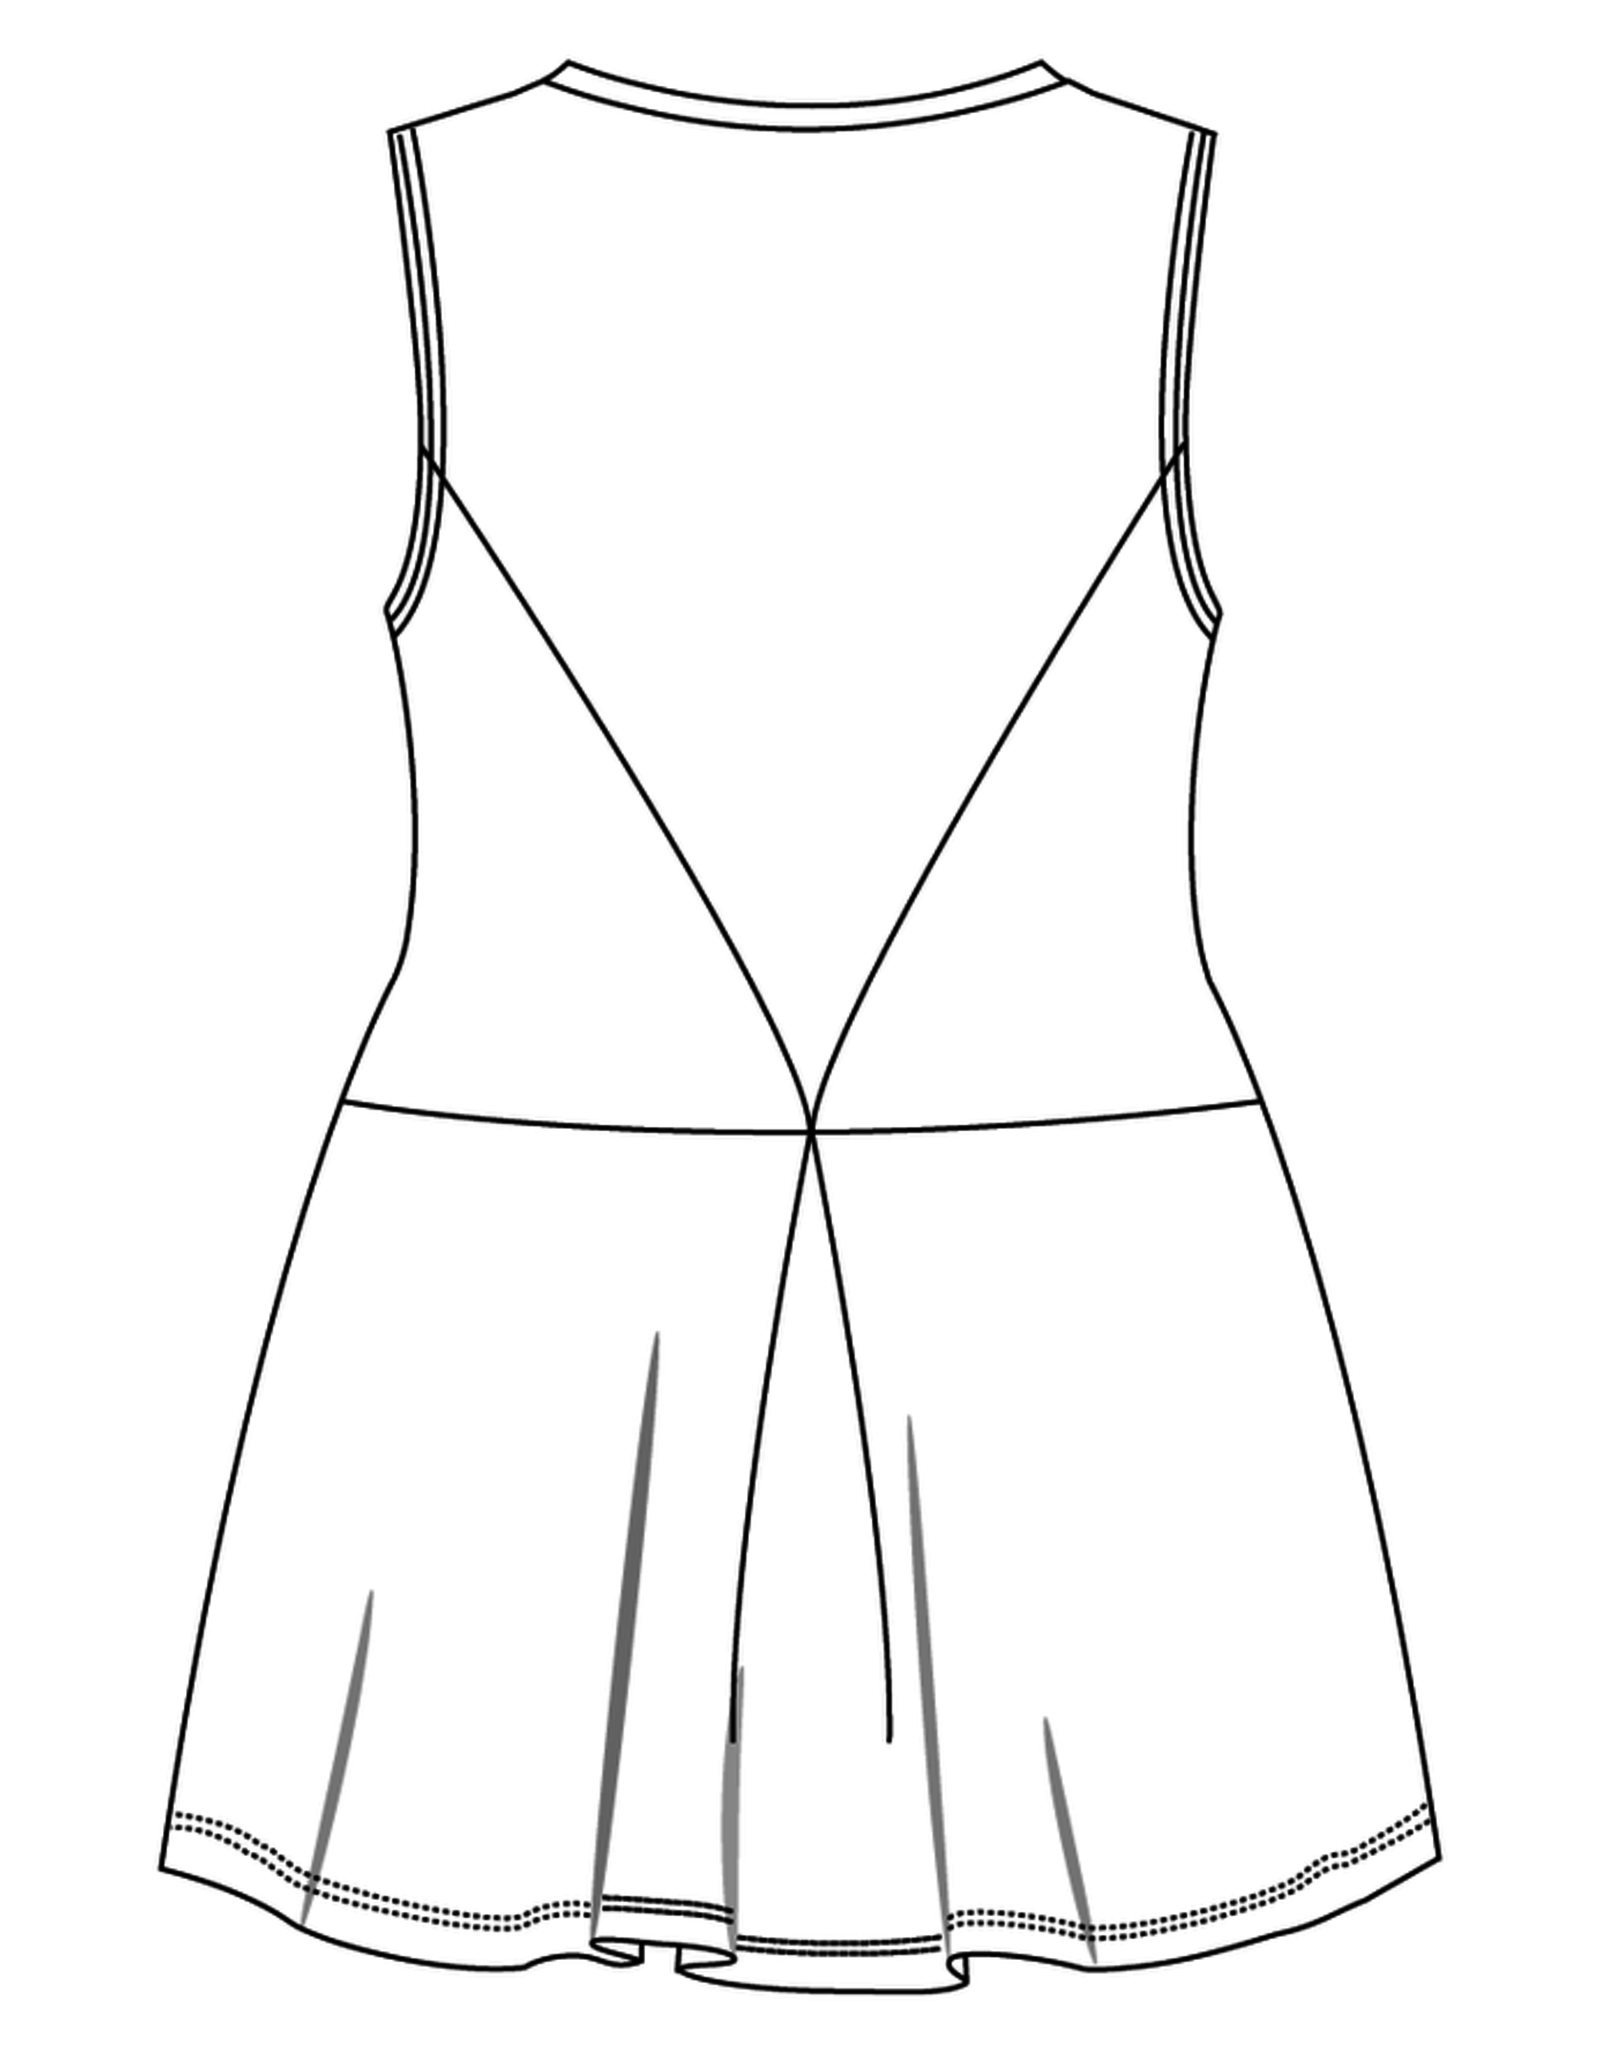 DIANE KENNEDY RECHARGE VEST